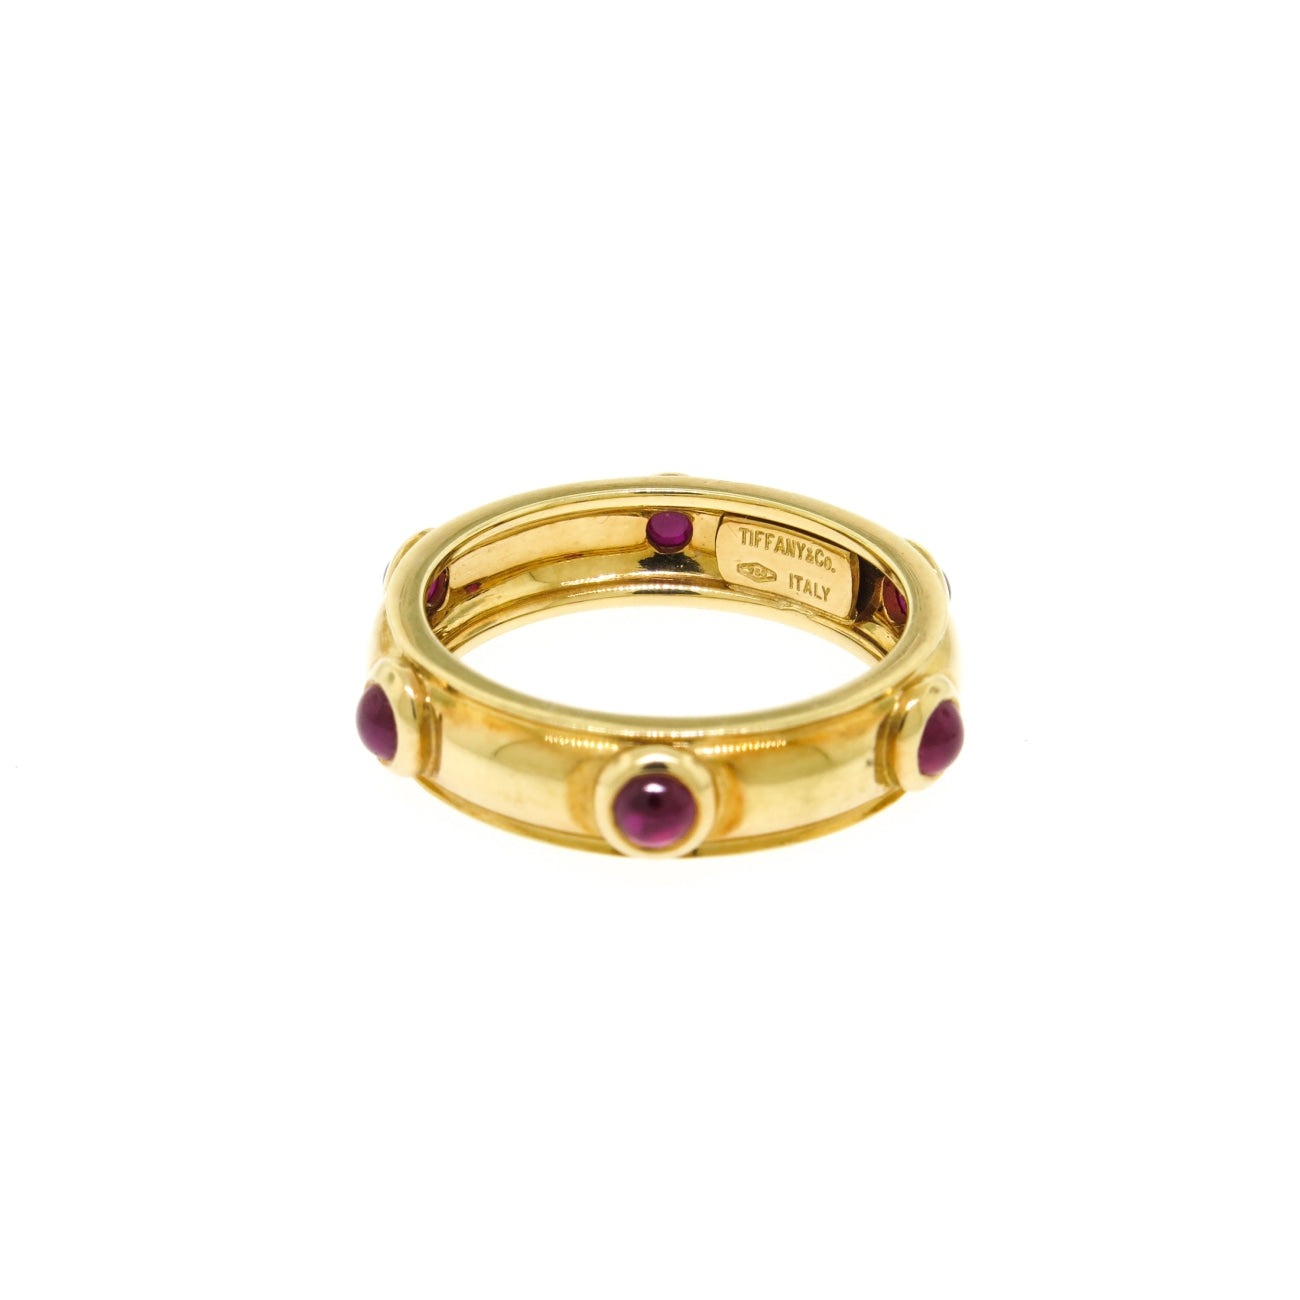 Tiffany & Co. - Estate Jewelry Estate Jewelry - Tiffany & Co. Ruby Yellow Gold Ring | Manfredi Jewels